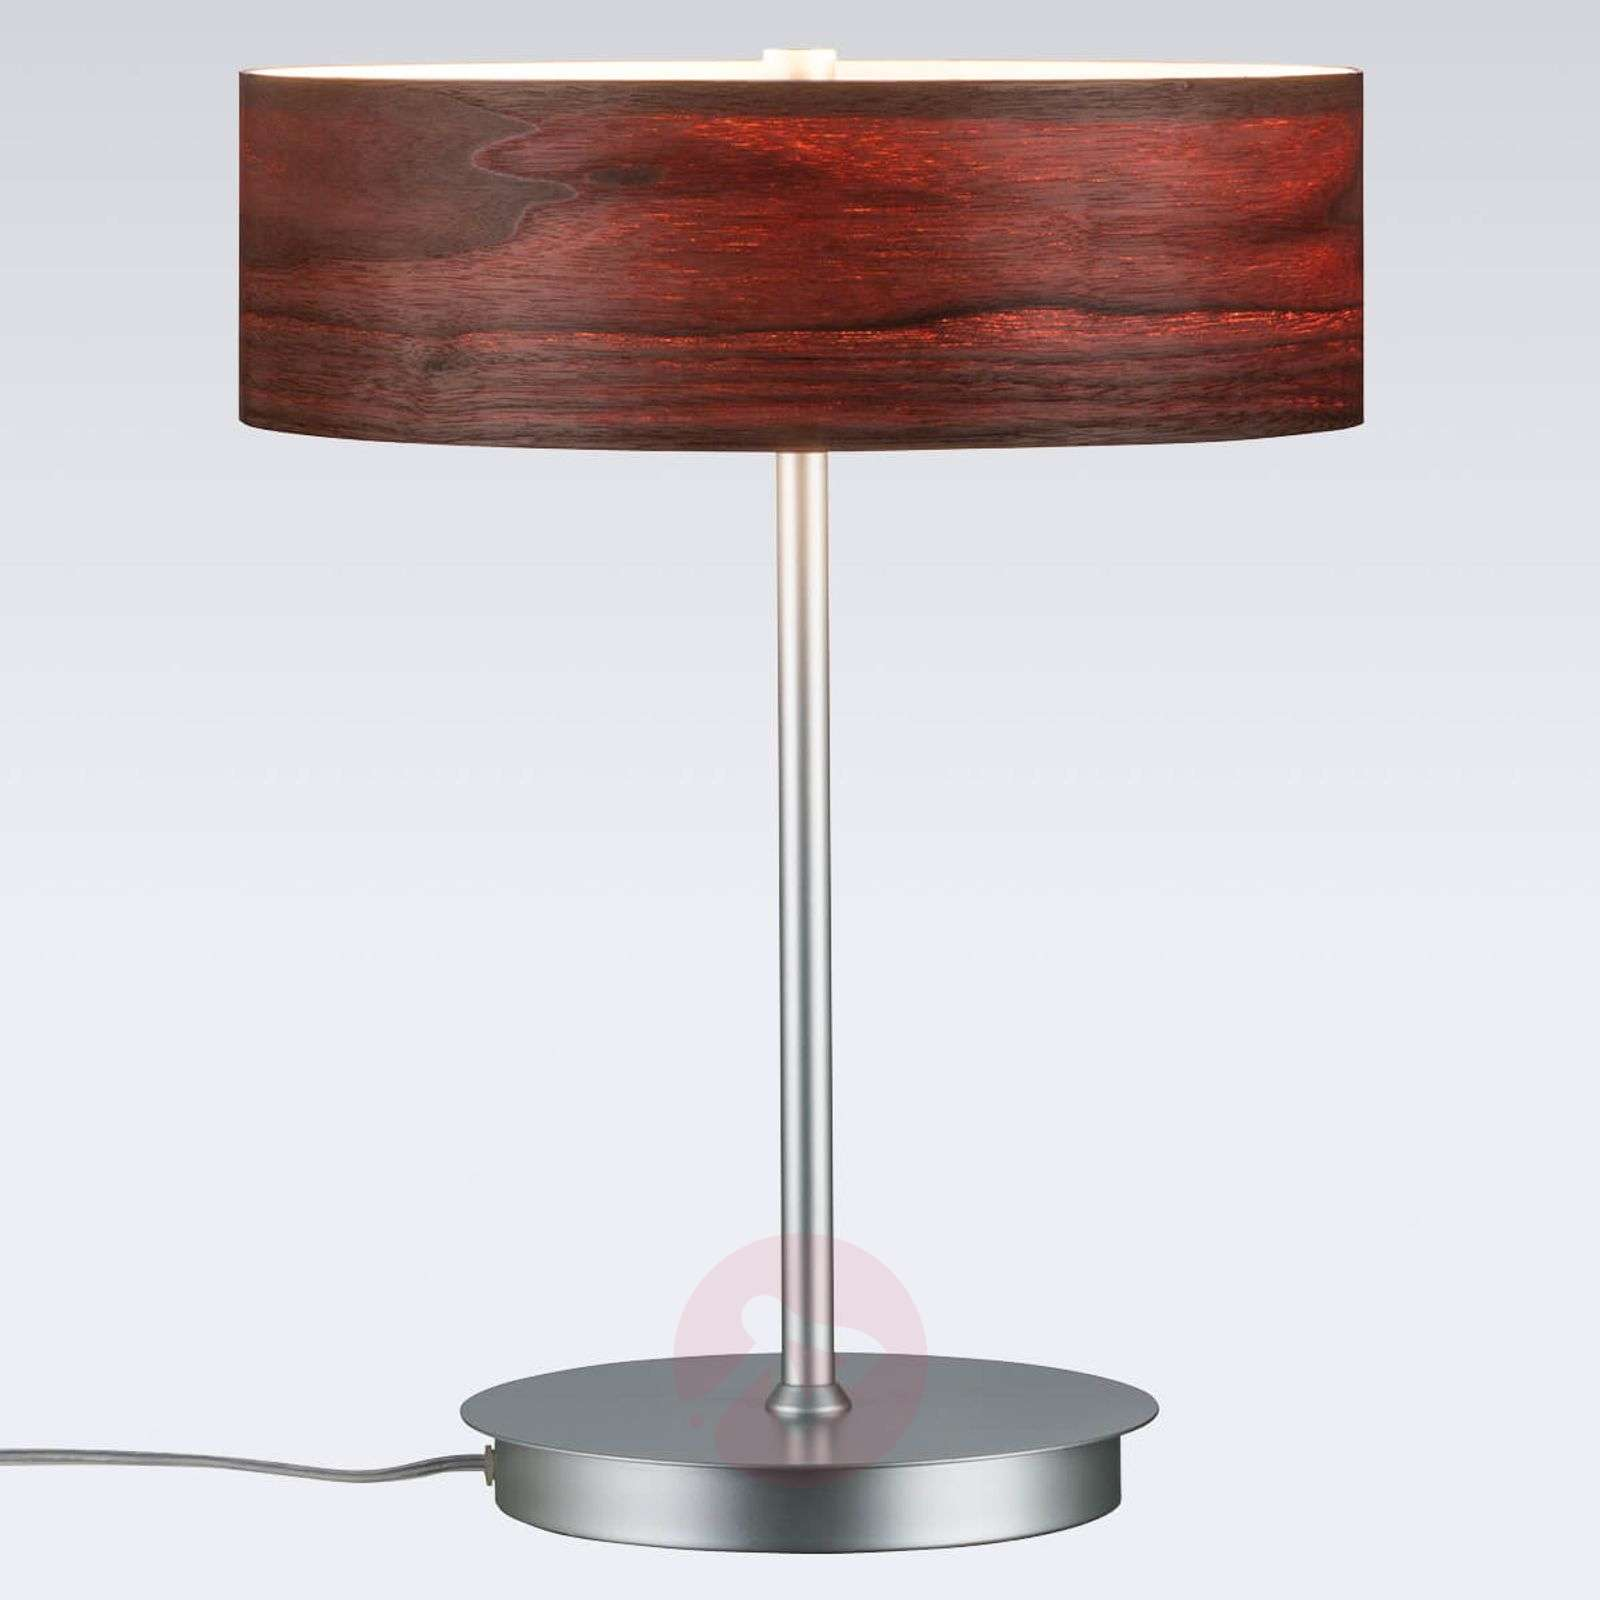 Liska chic table lamp with wooden lampshade-7601064-01